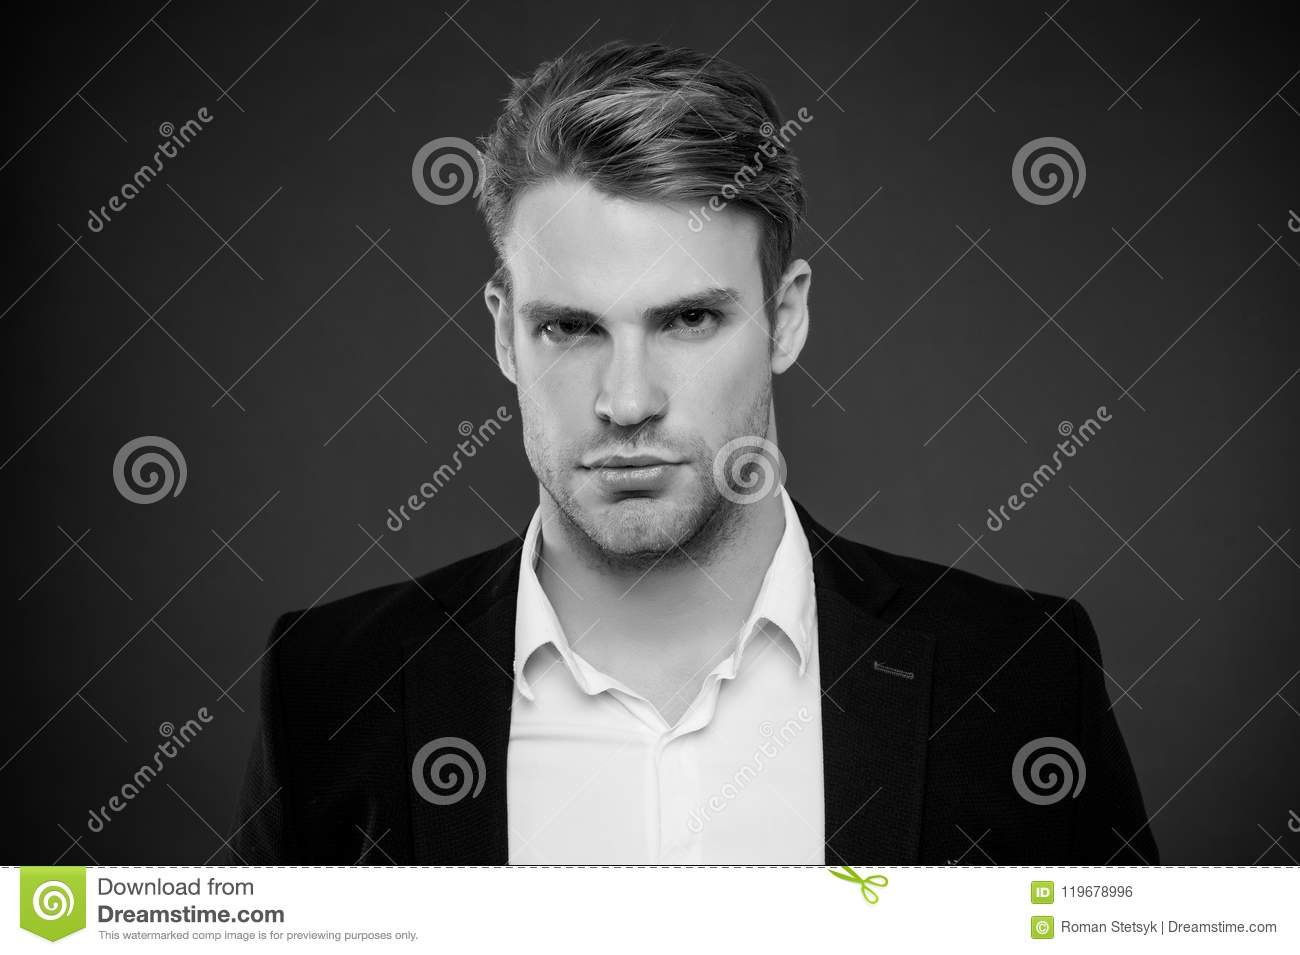 Guy confident in his appearance. Confidence and masculinity. Man well groomed with bristle and hairstyle grey background